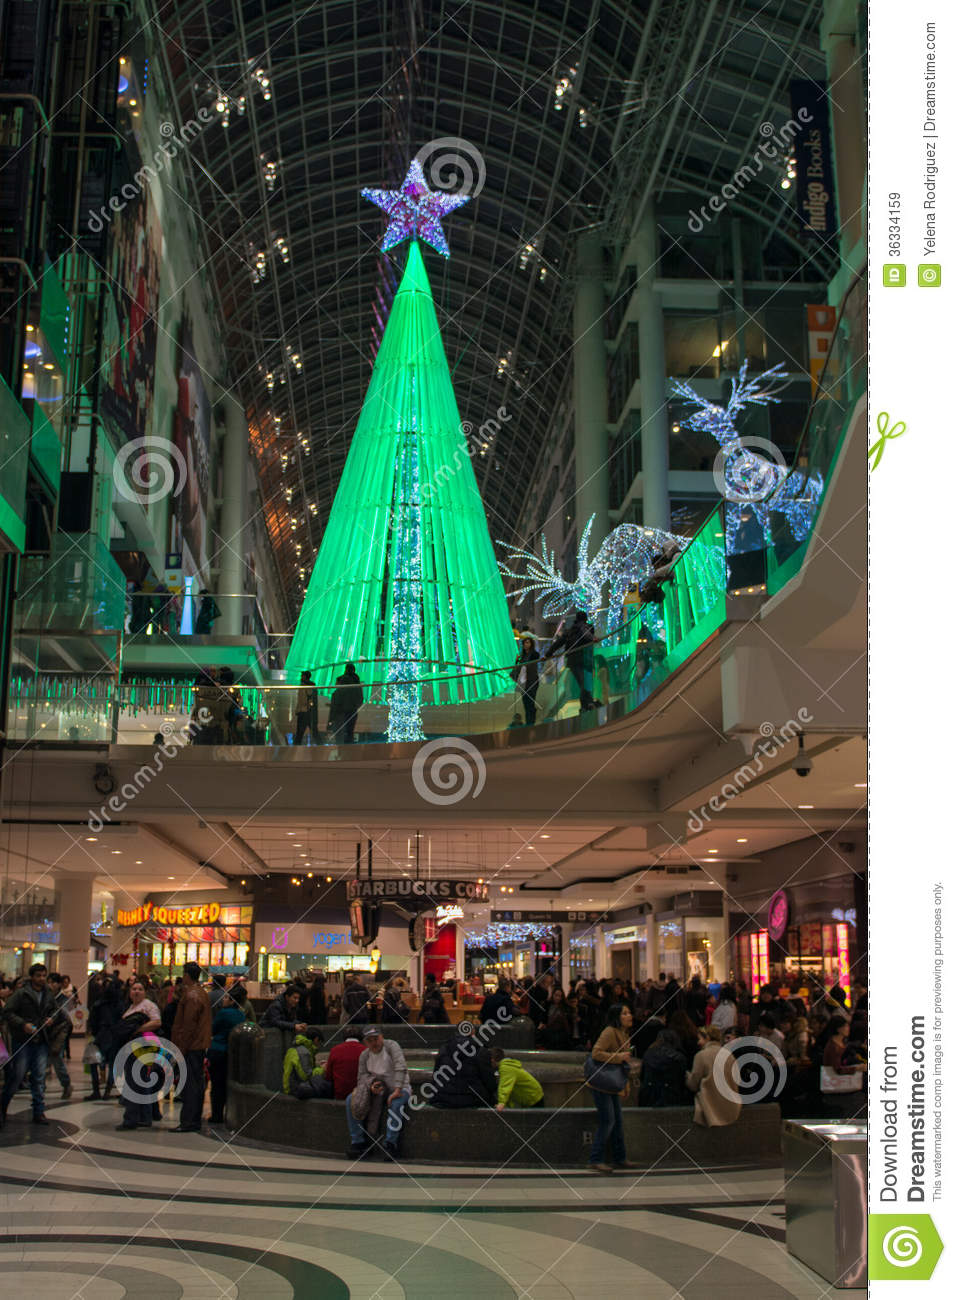 Dreamstime Com Christmas Decorations In Shopping Malls